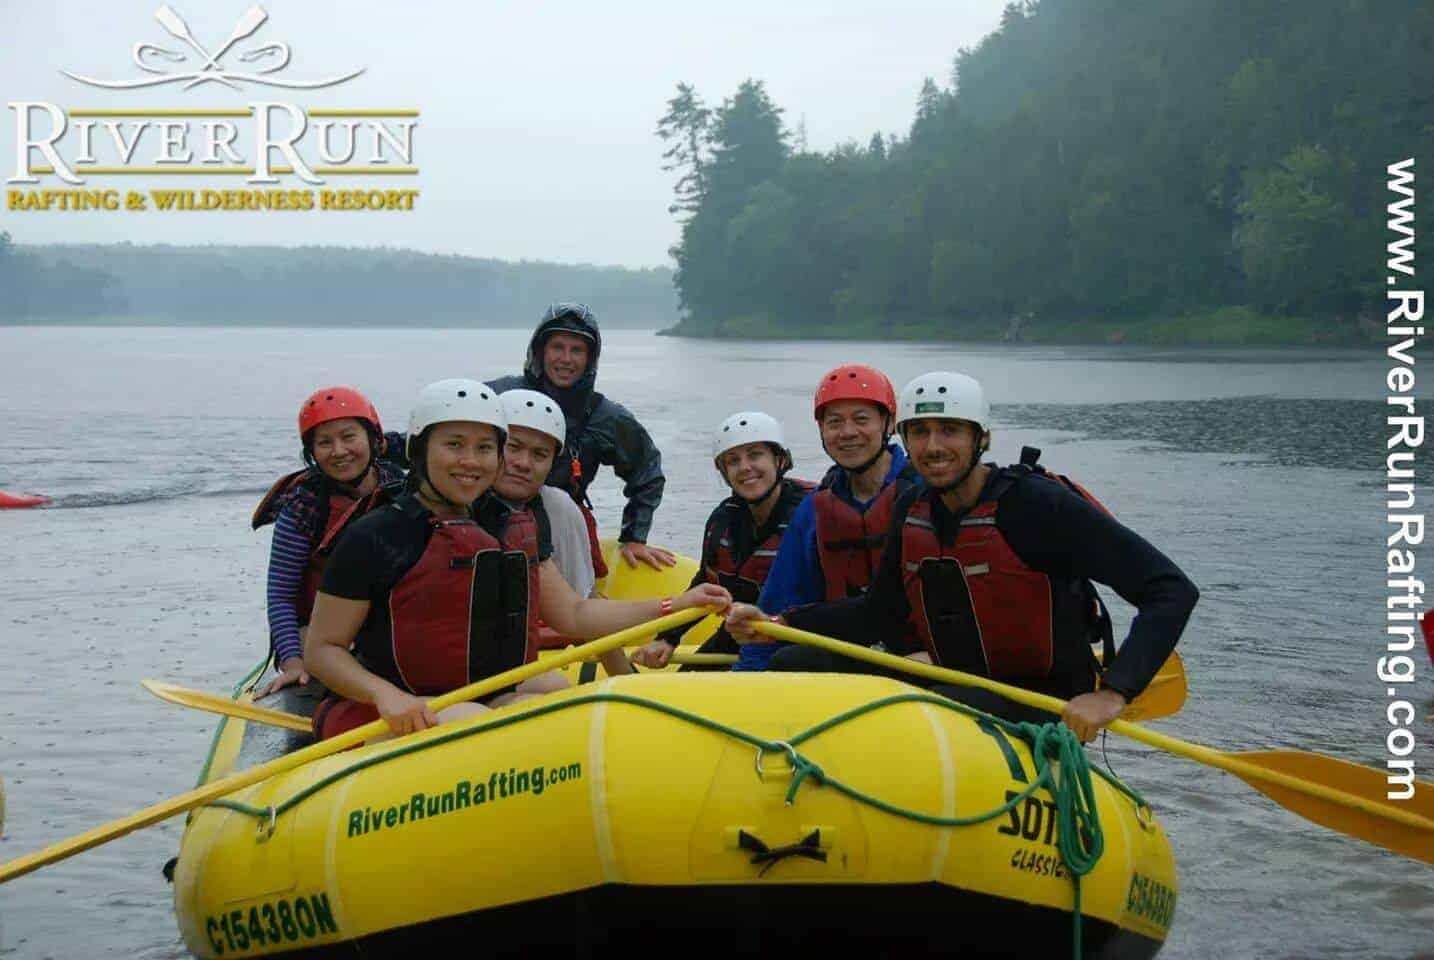 Whitewater Rafting in Ottawa with RiverRun Rafting and Samba Days